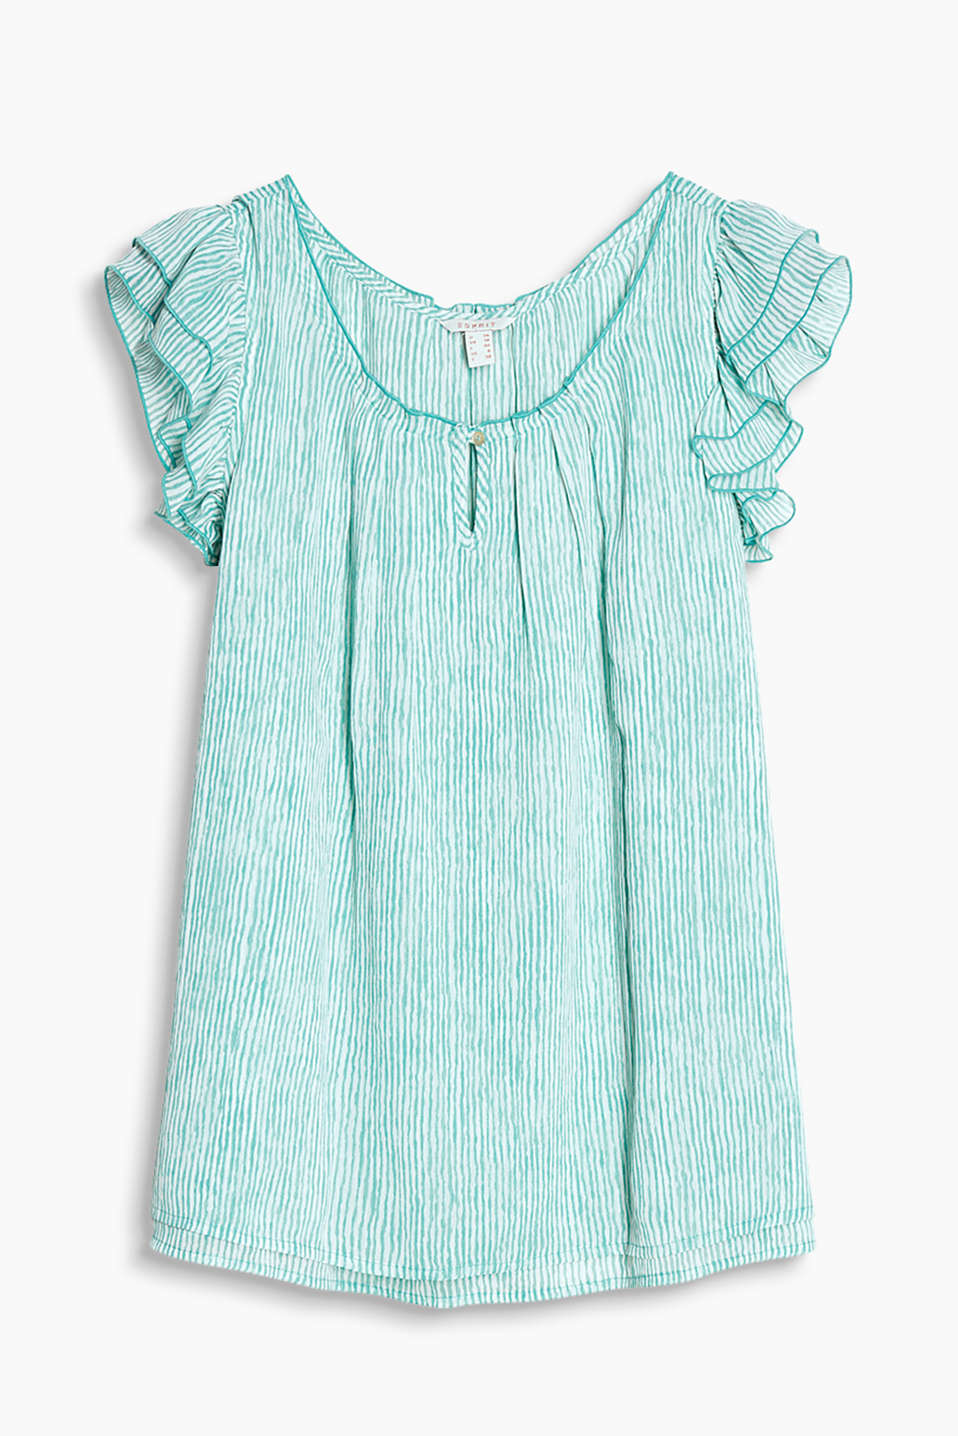 Dainty chiffon blouse with an uneven stripe pattern, Carmen neckline and frilled sleeves